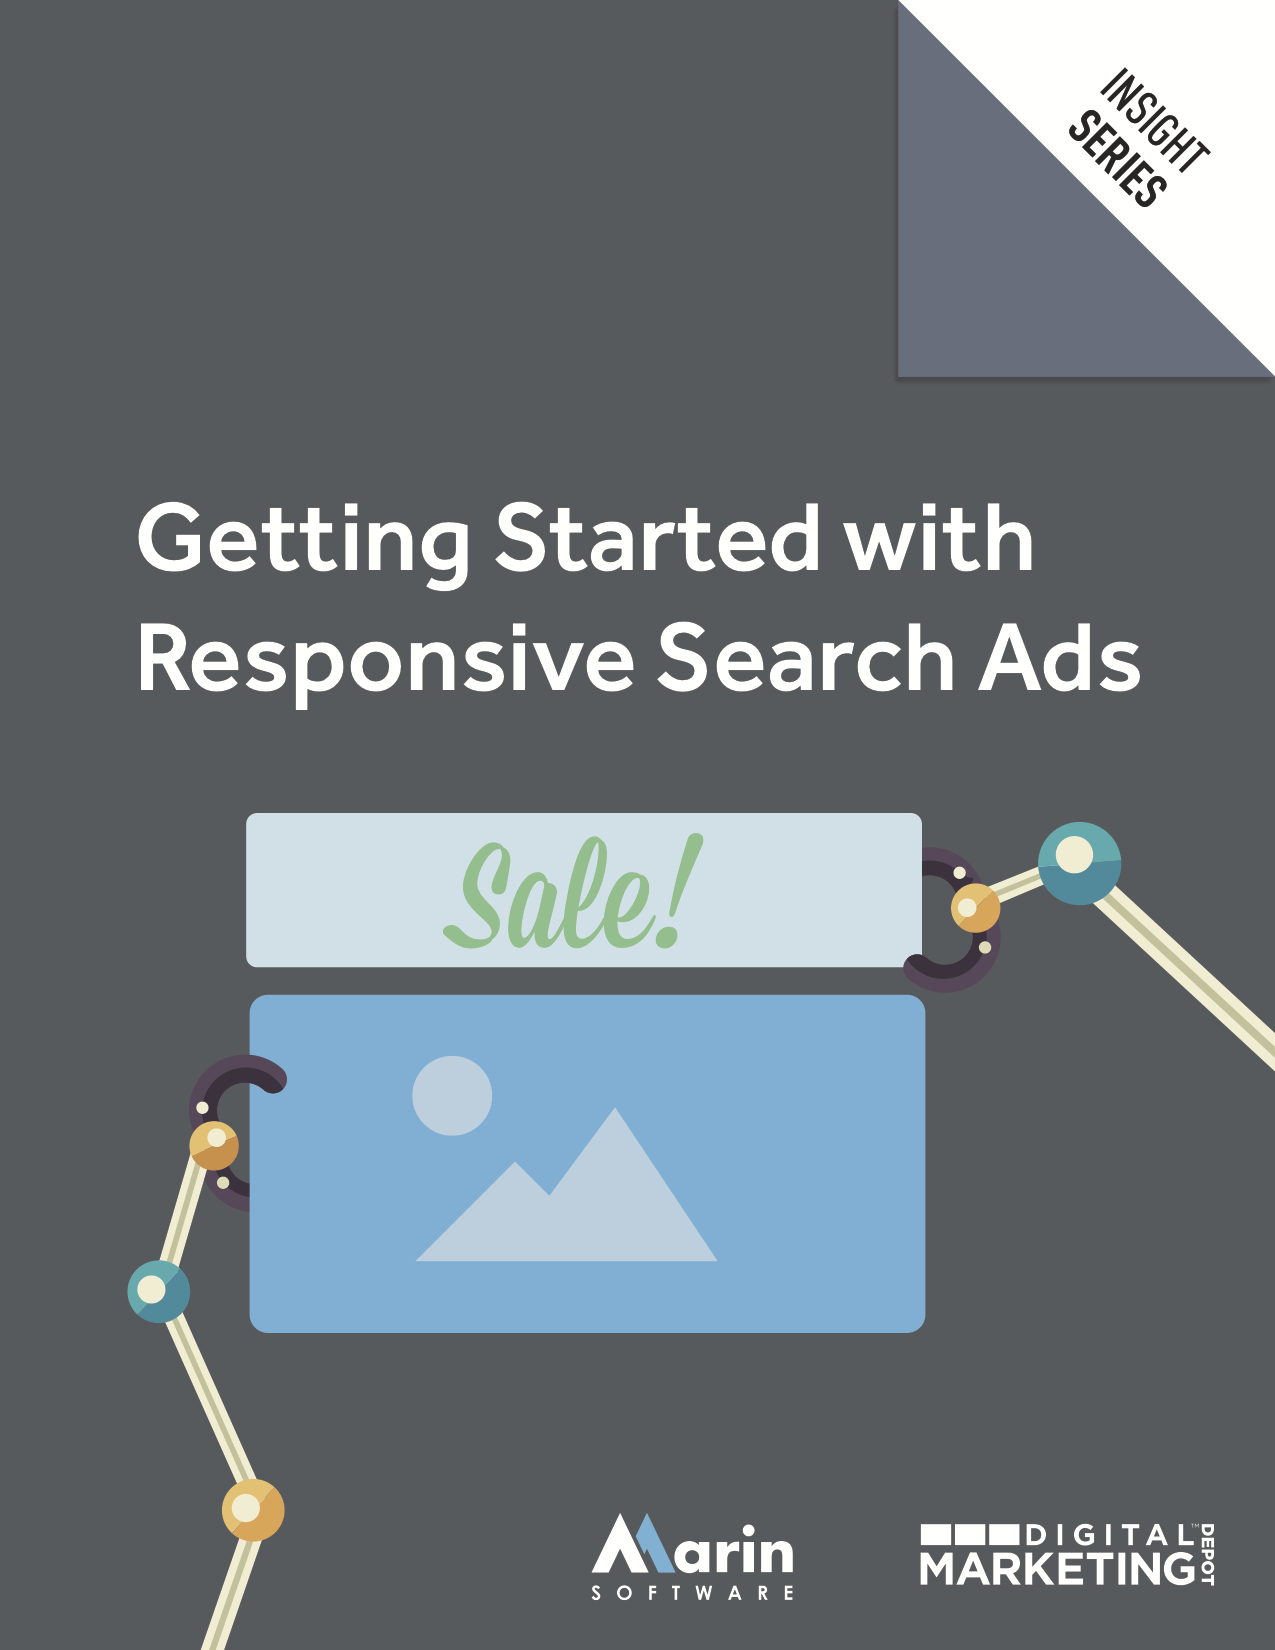 4 Best Practices for Responsive Search Ads